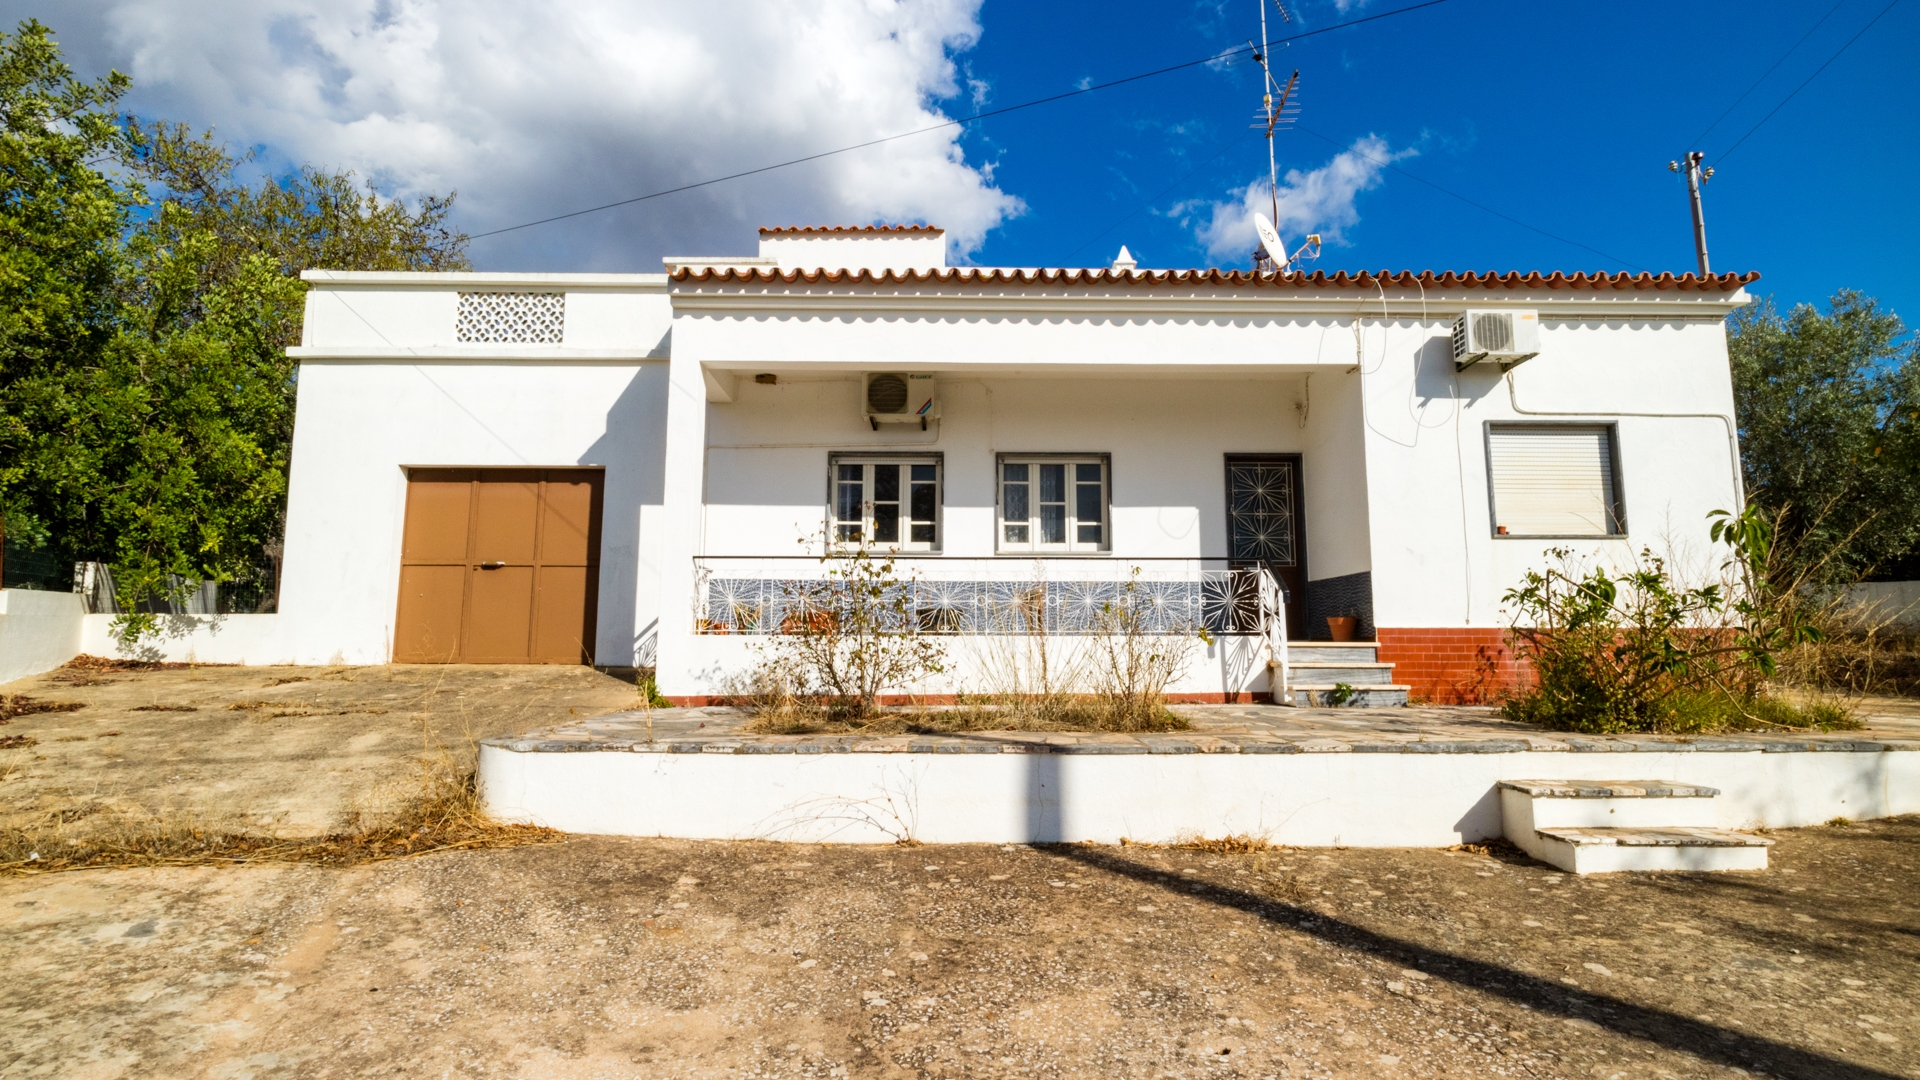 Renovation Project: 3 Bedroom House with Annex and Warehouse near Santa Bárbara de Nexe | VM1560 This detached house is located on a quite road just a few minutes' drive to Santa Barbara. A great potential to convert into a large family home or rental investment.